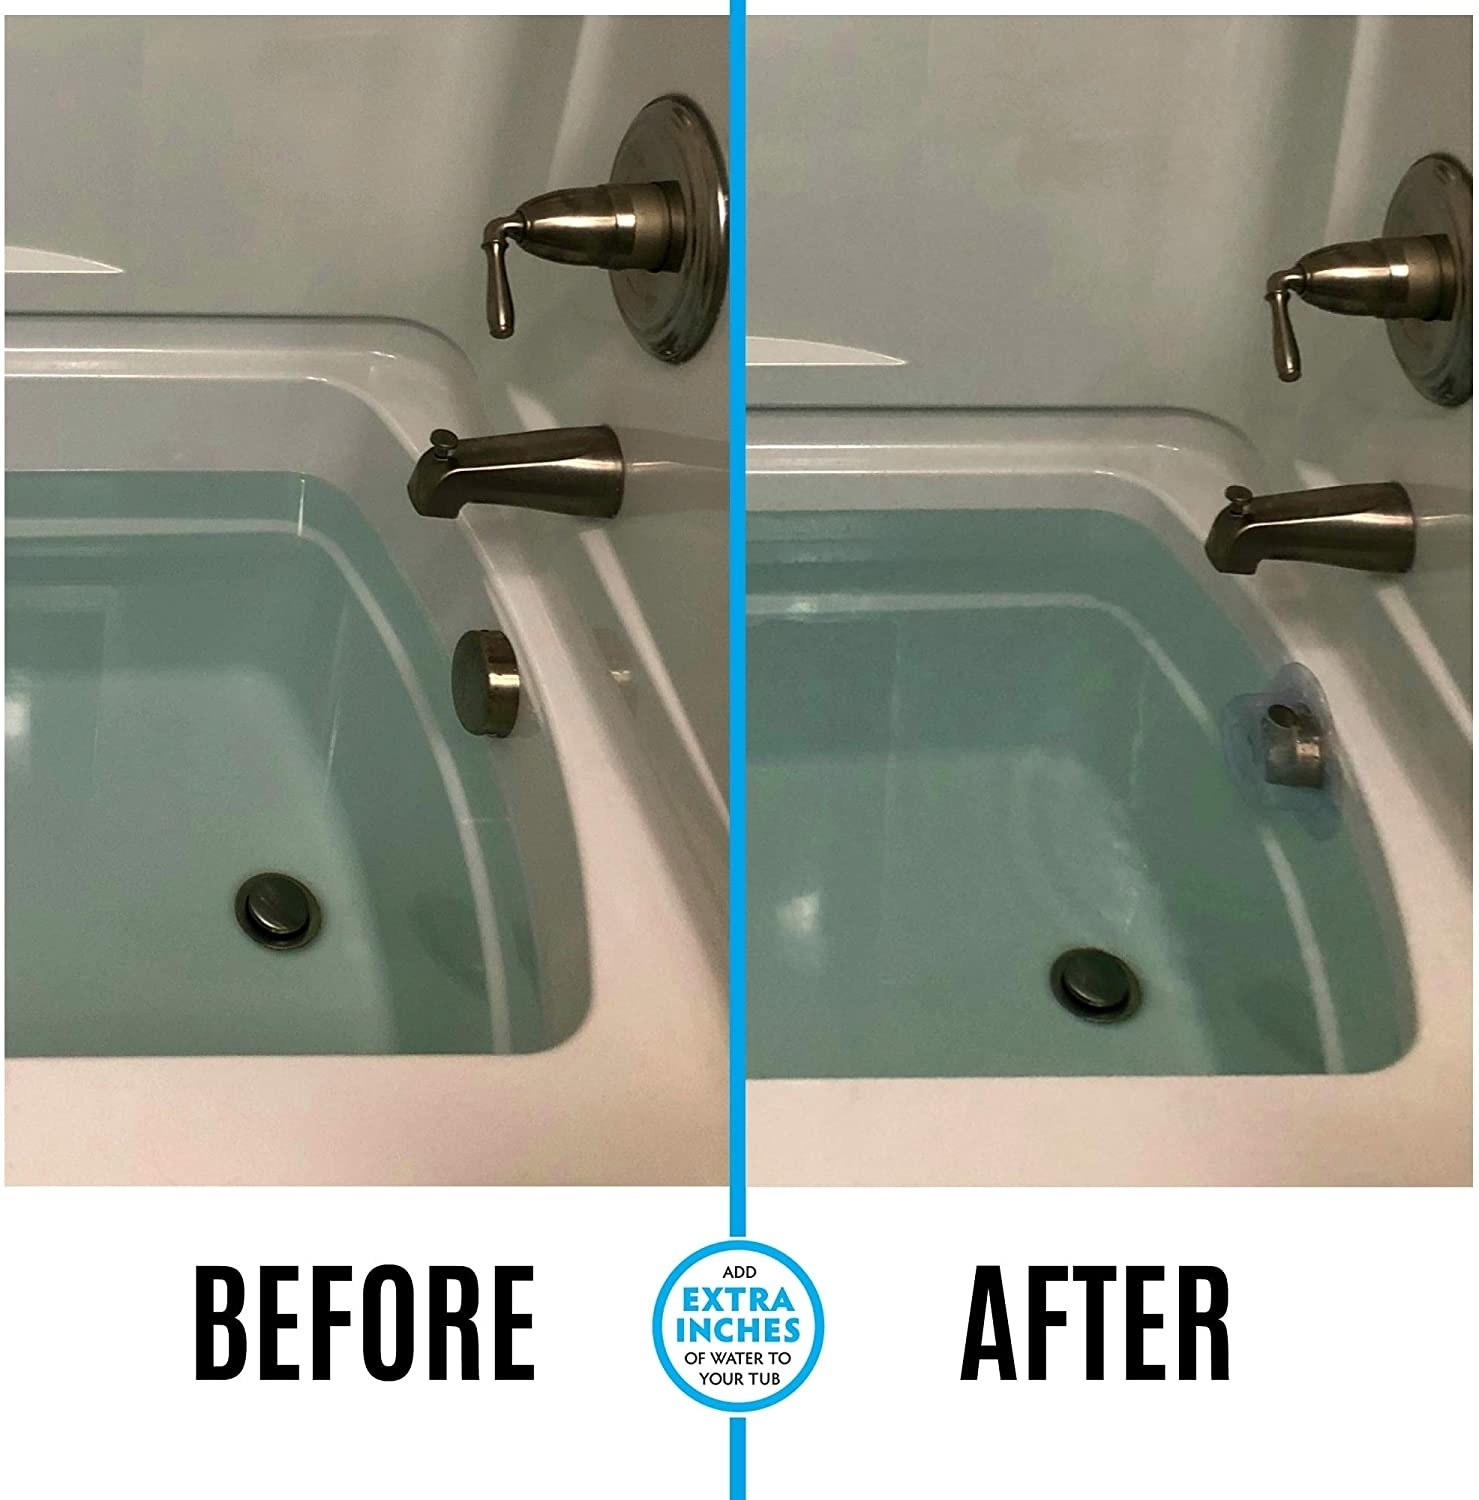 a before and after shot with more water in the tub while the product is in use